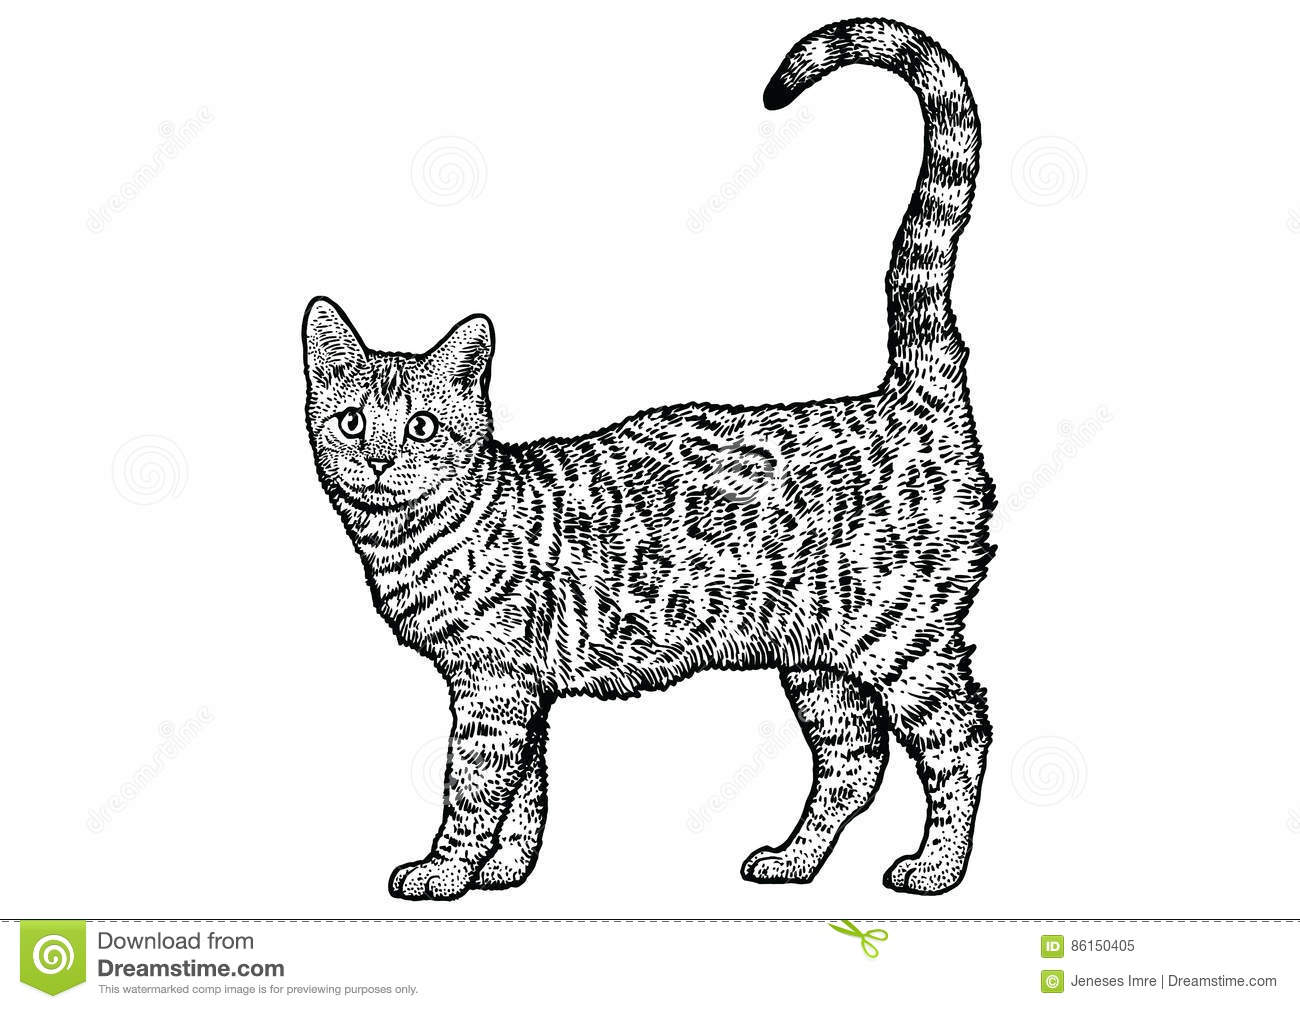 Bengal Cat Illustration Drawing Engraving Line Art